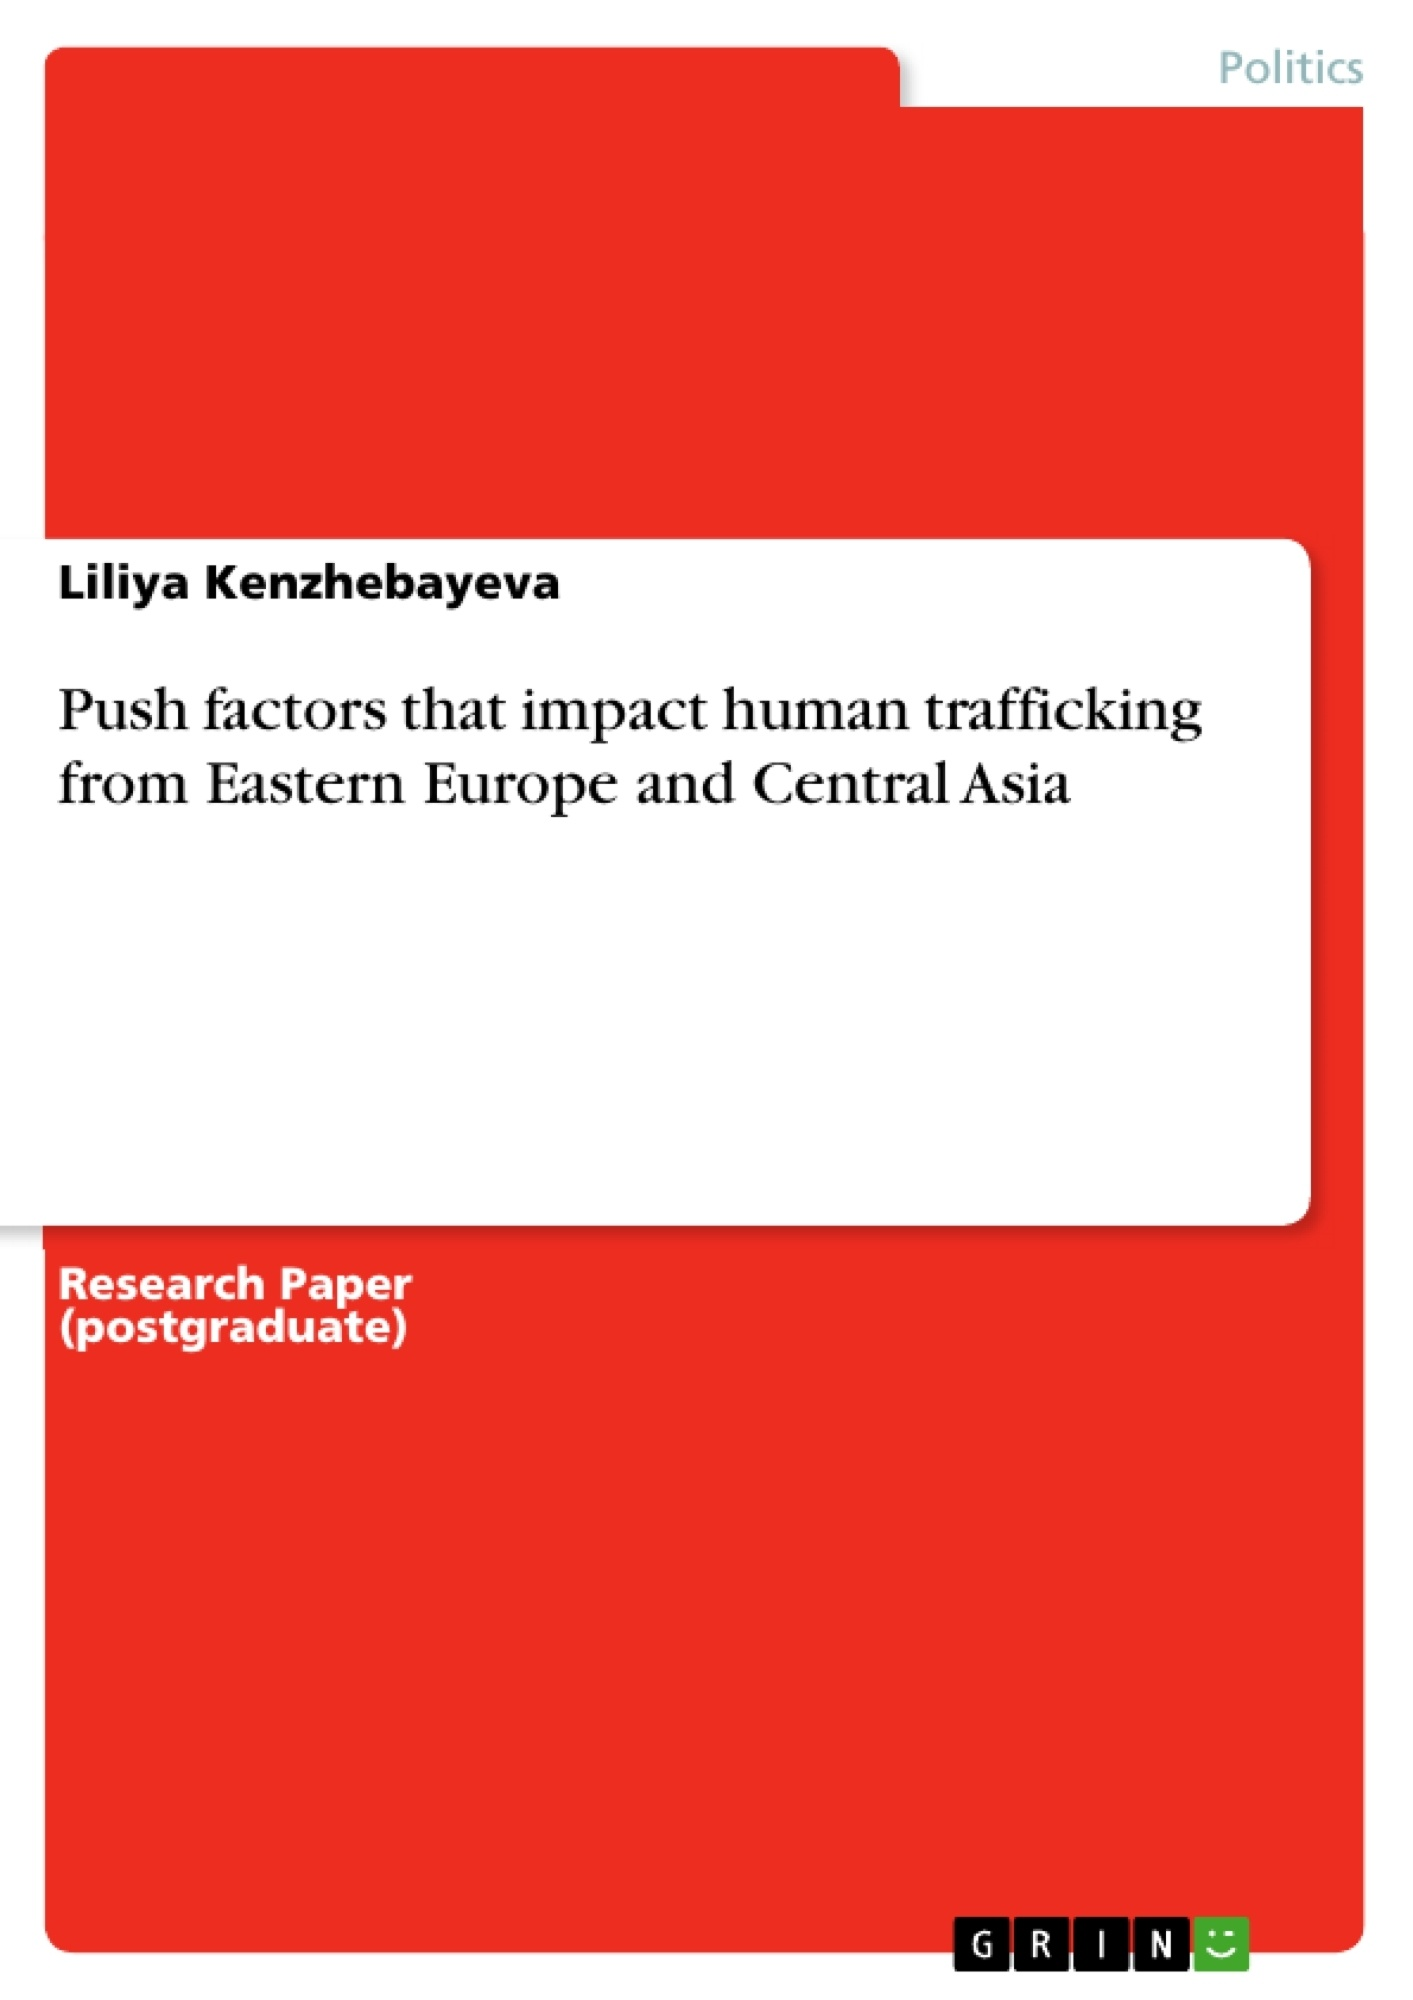 Title: Push factors that impact human trafficking from Eastern Europe and Central Asia